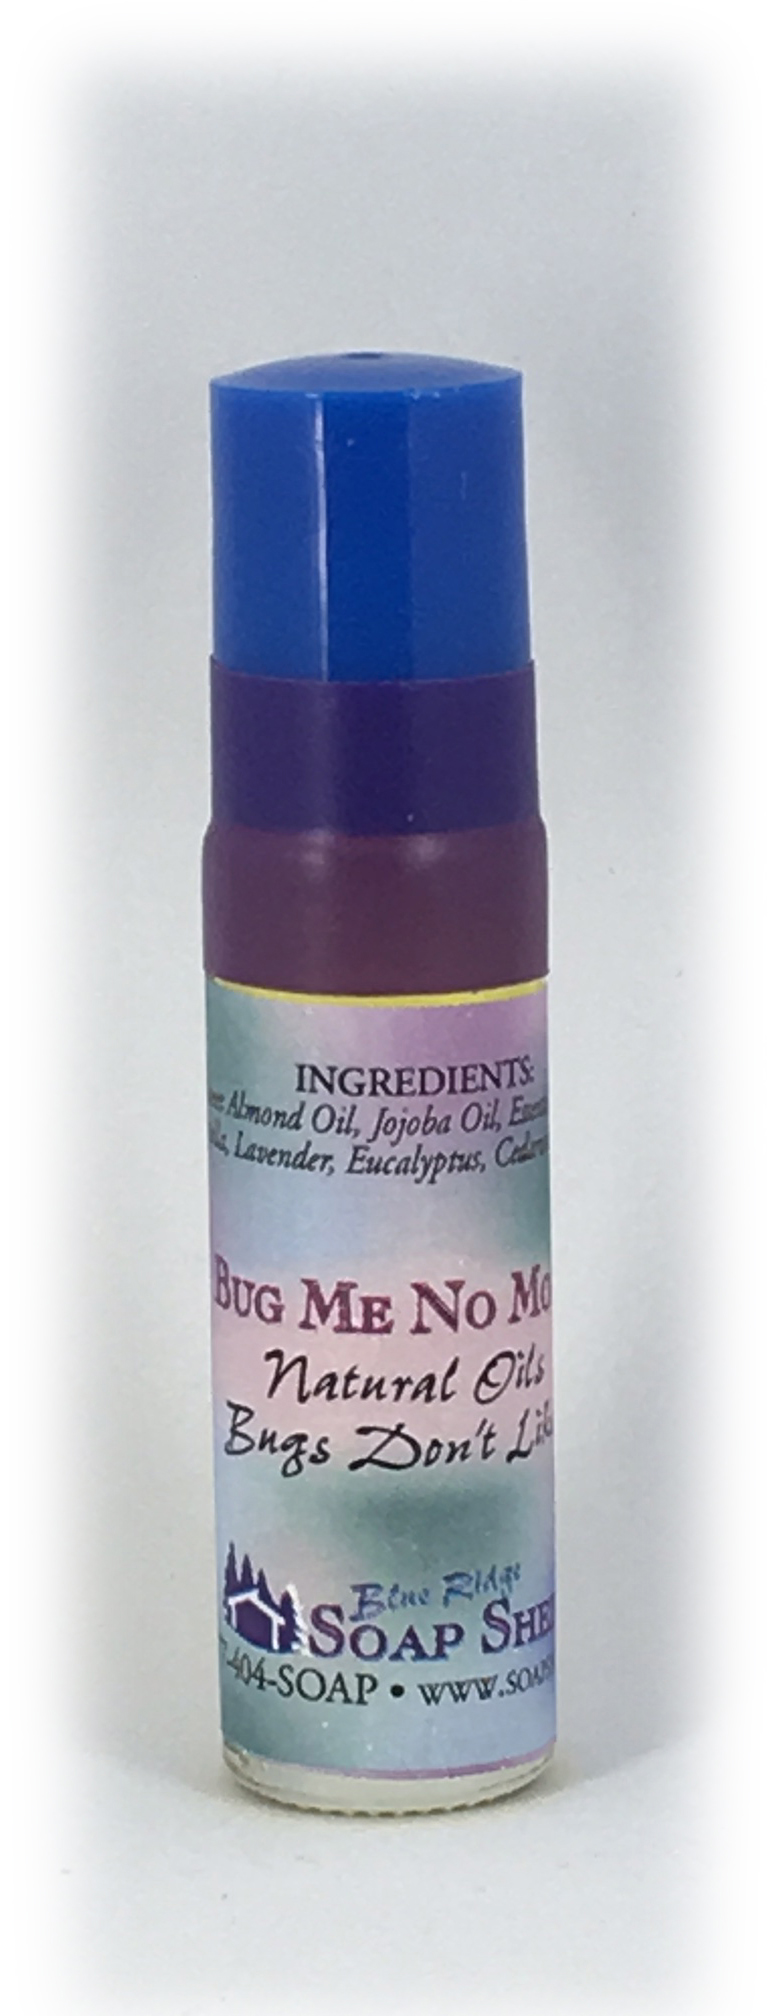 Bug Me No More Roll-On Insect Oil